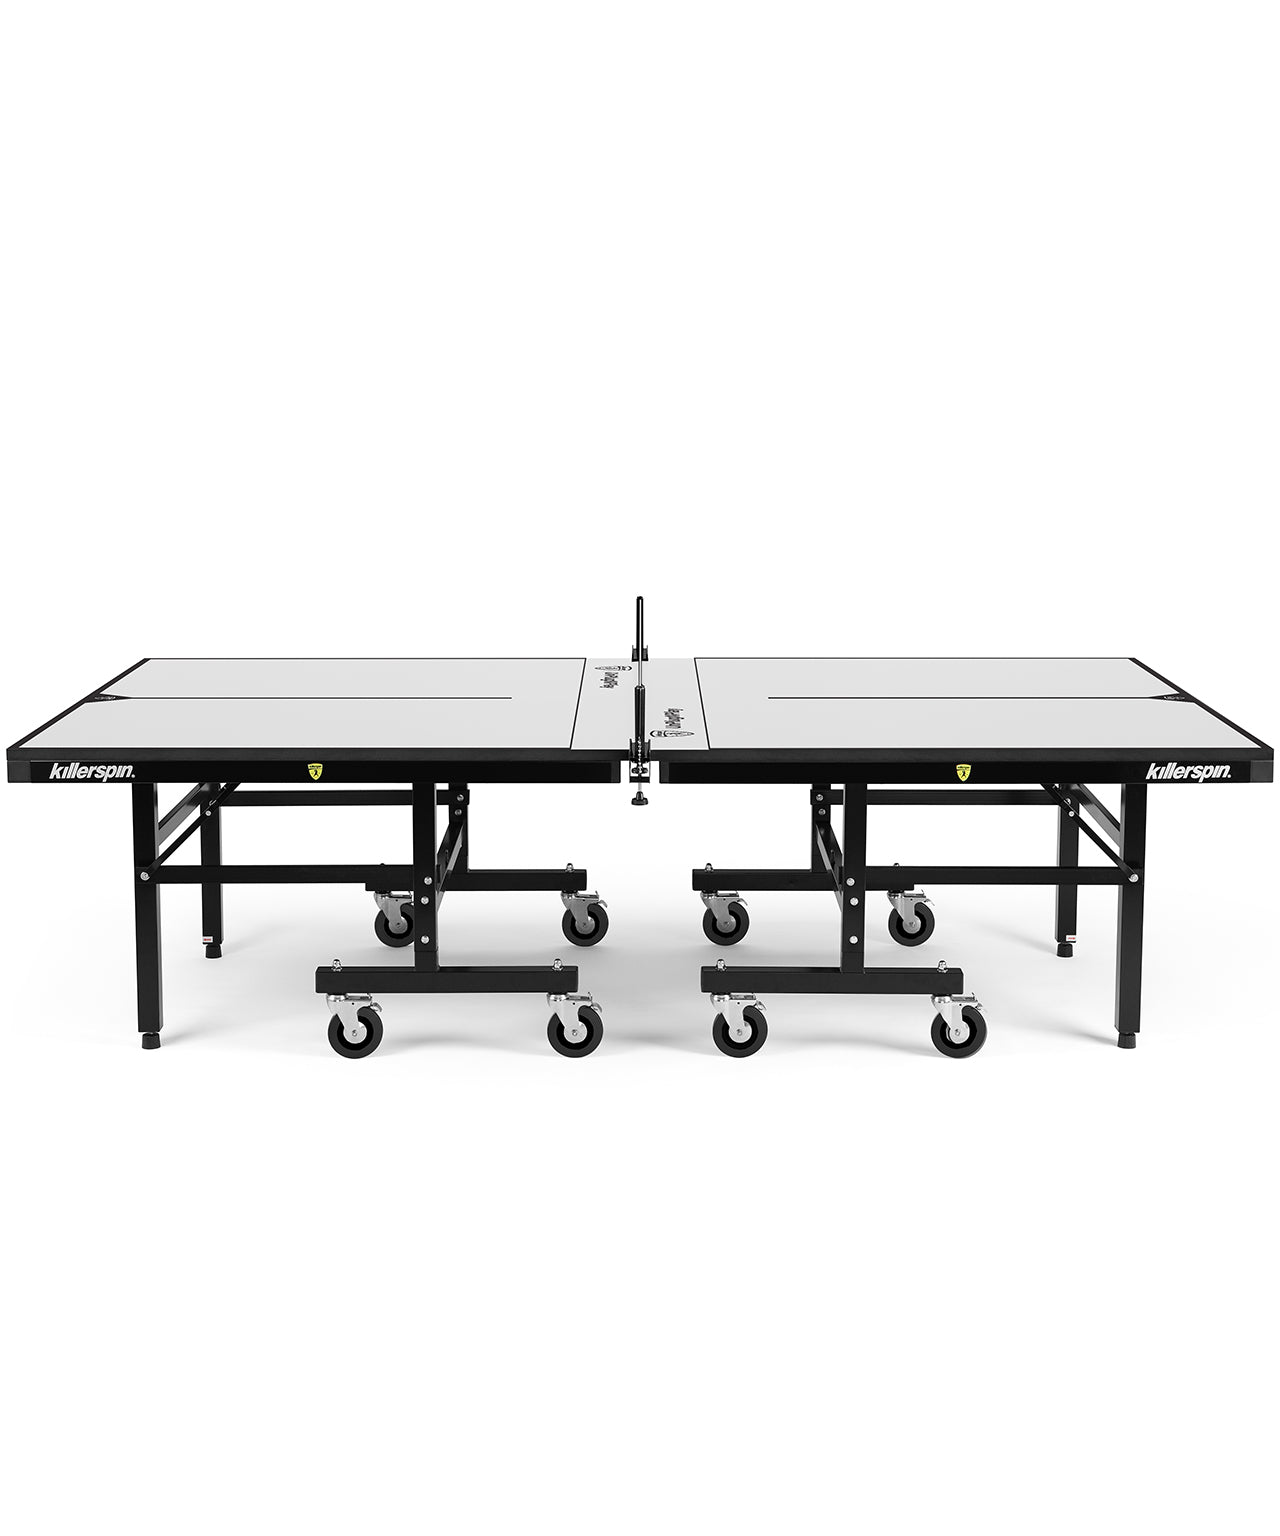 Killerspin Indoor Ping Pong Table UnPlugNPlay415 Max Vanilla Black frame White top model 2020 - side angle